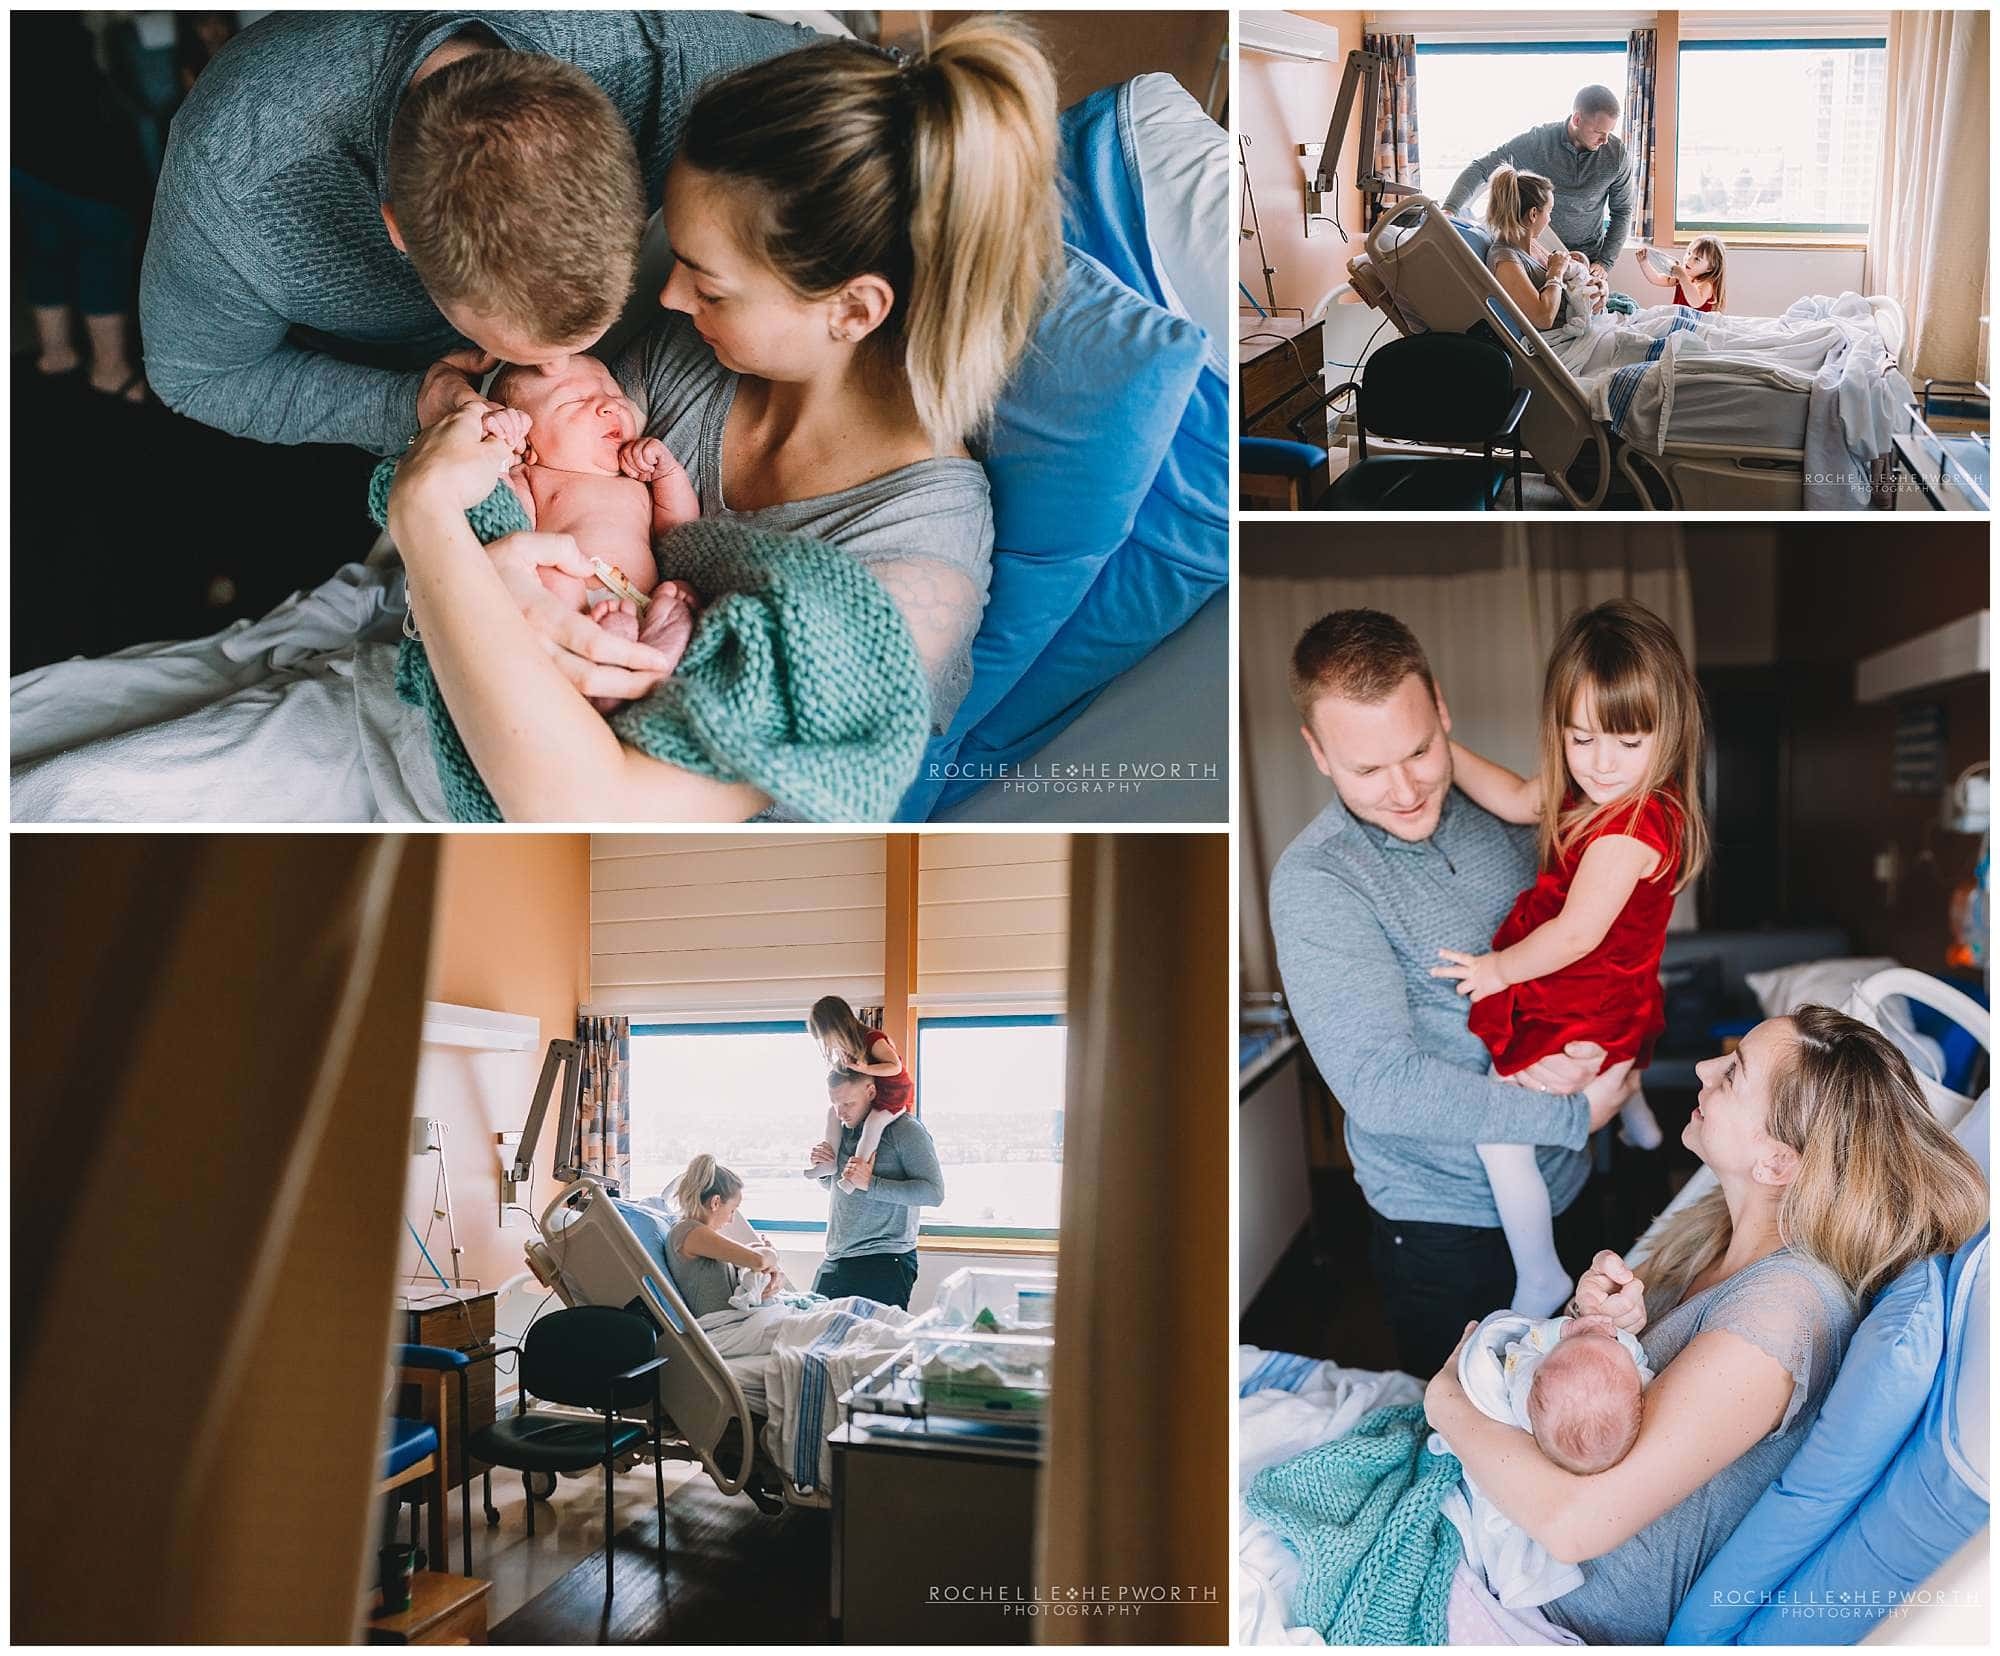 dad and sister interacting with mom and newborn baby sitting in hospital bed